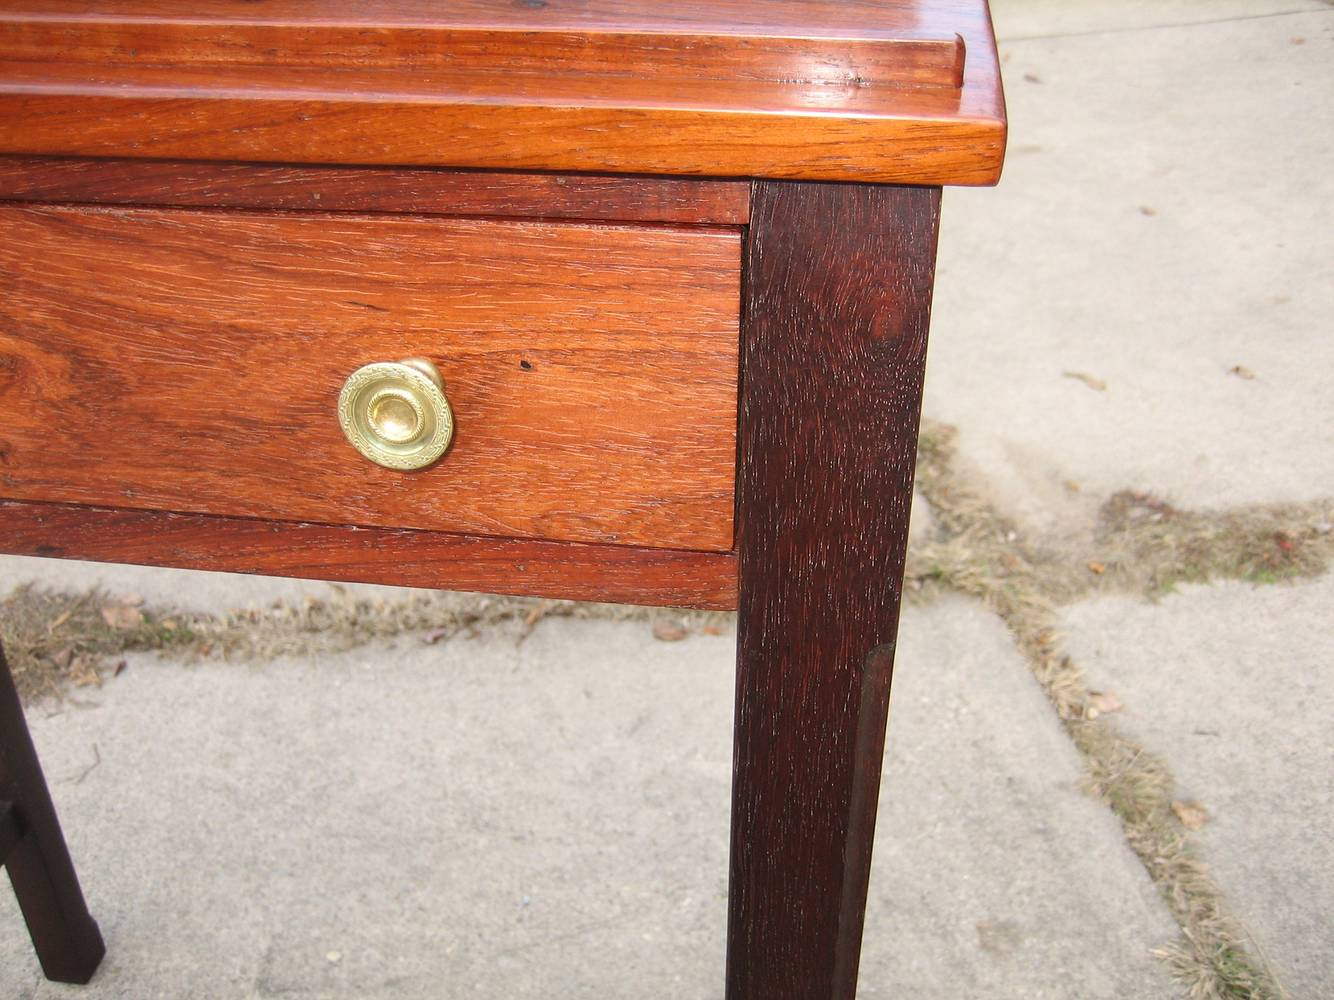 Inset of front drawer opening Rosewood Slant-Top Desk by Ken  Vick